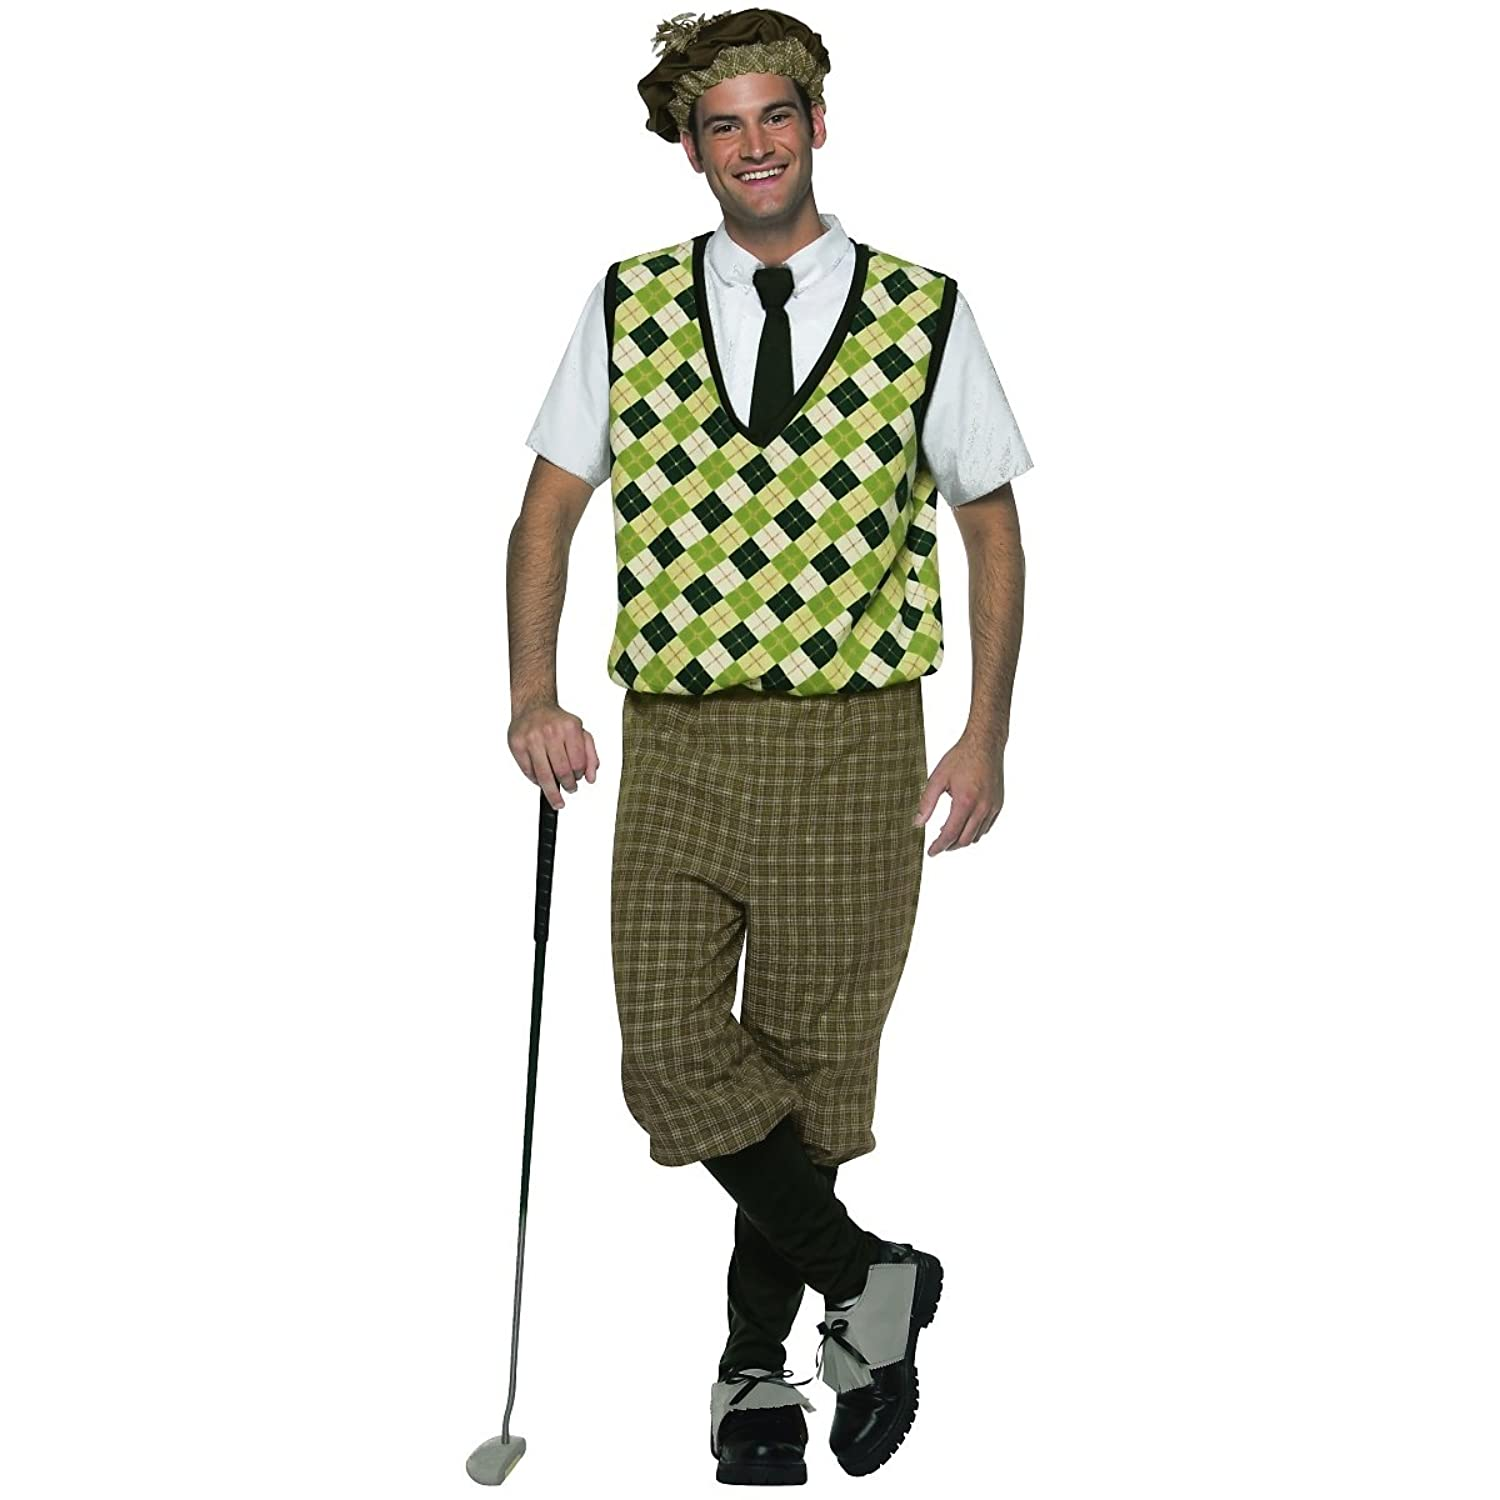 1920s Men's Costumes Original Old Tyme Golfer Adult Costume $50.00 AT vintagedancer.com